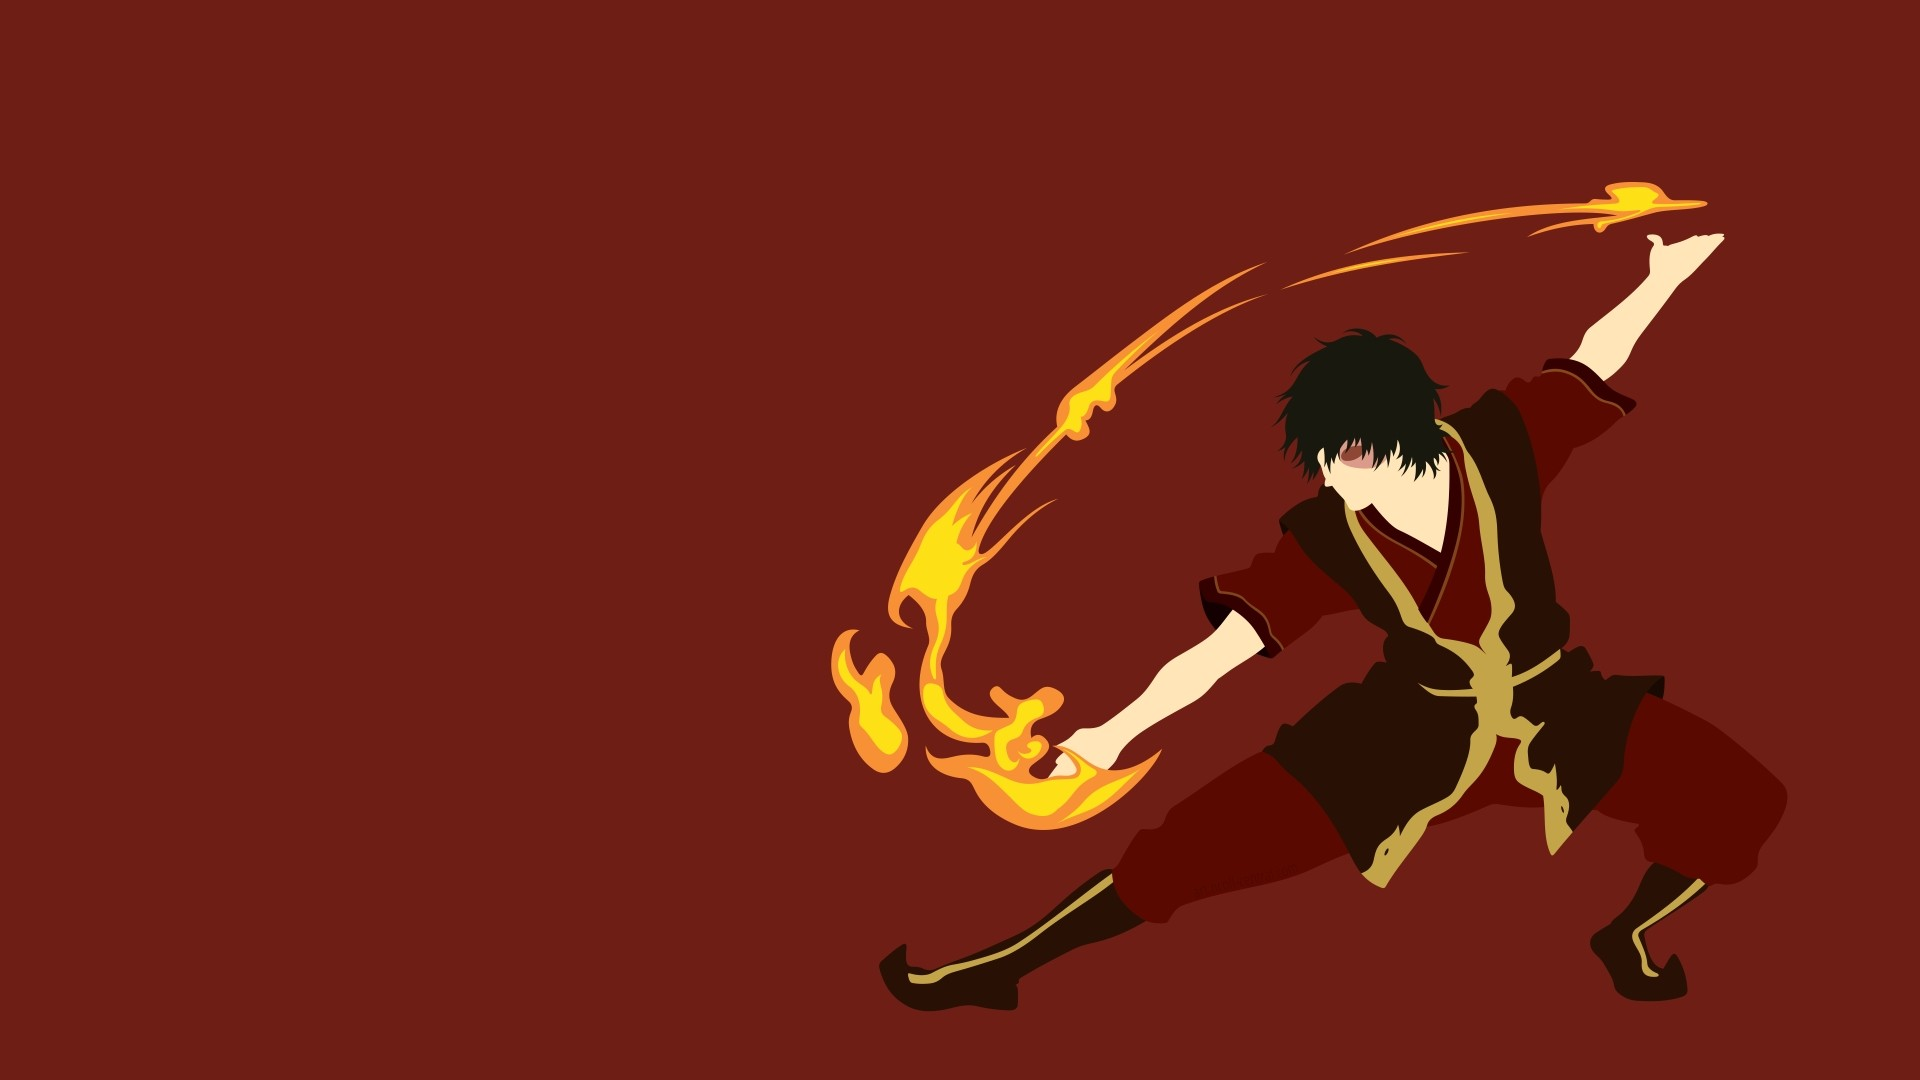 Avatar The Last Airbender Wallpaper and Background